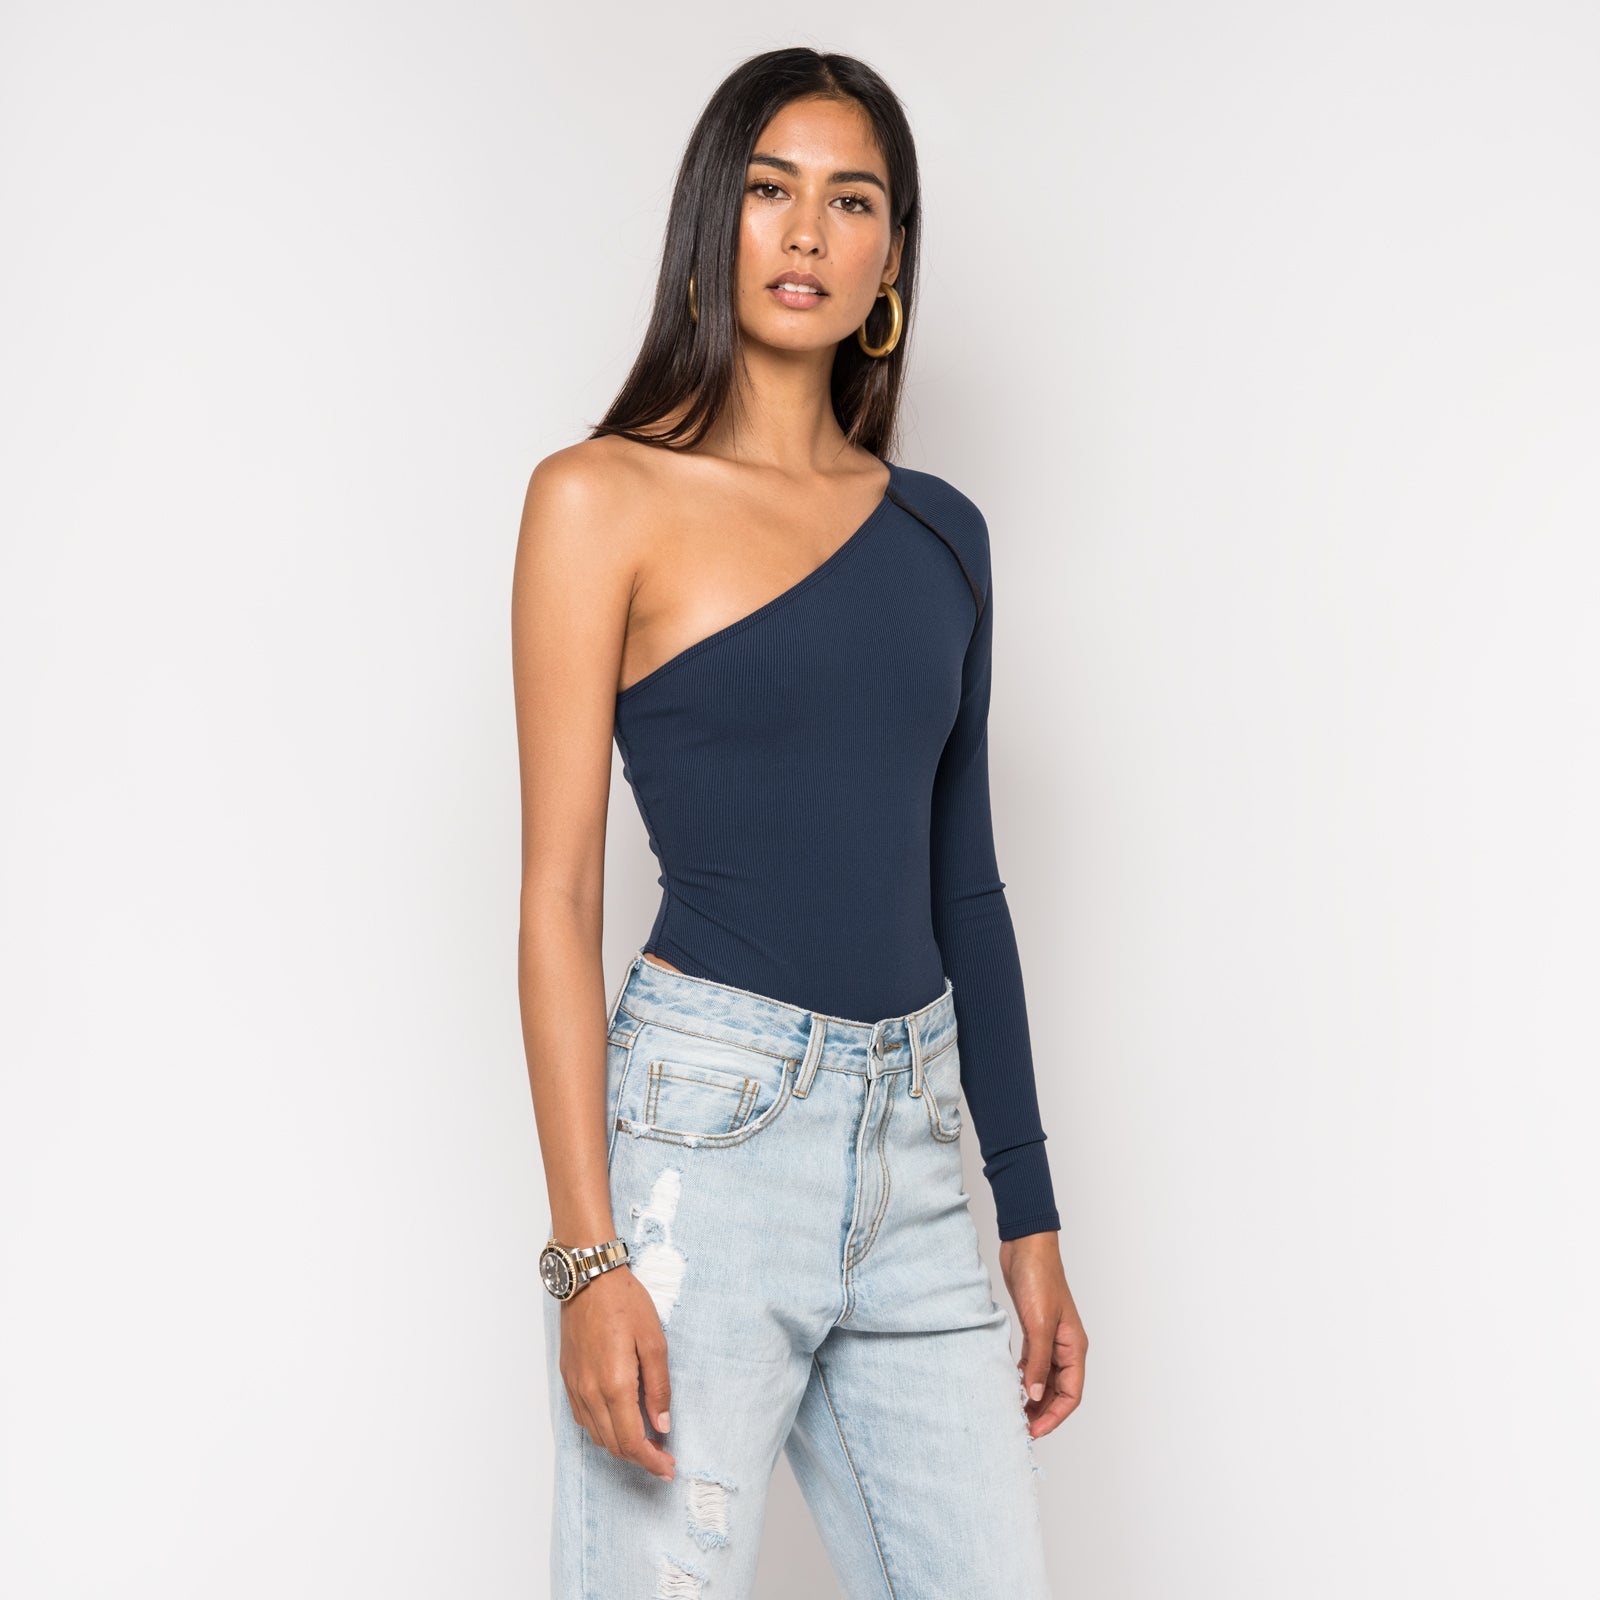 Kith Alea One Shoulder Bodysuit - Navy